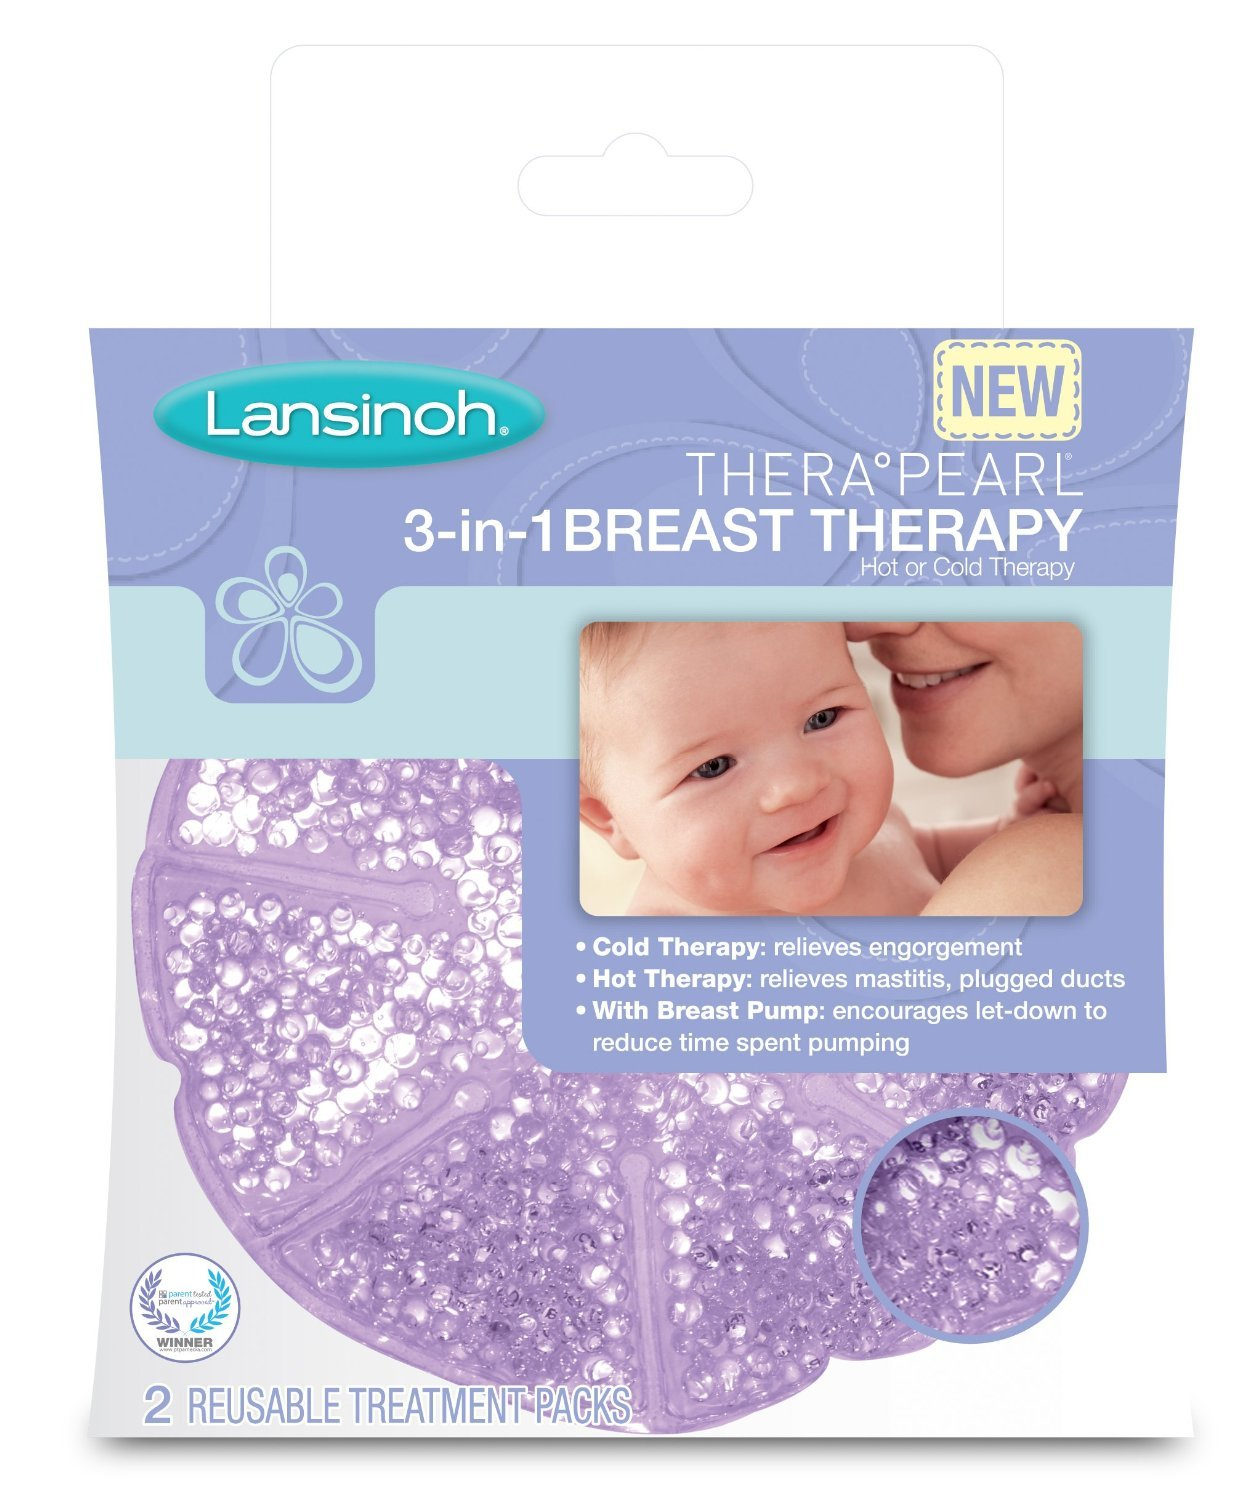 Lansinoh TheraPearl 3-in-1 Breast Therapy (Pack of 2) LANSINOH LABORATORIES INC